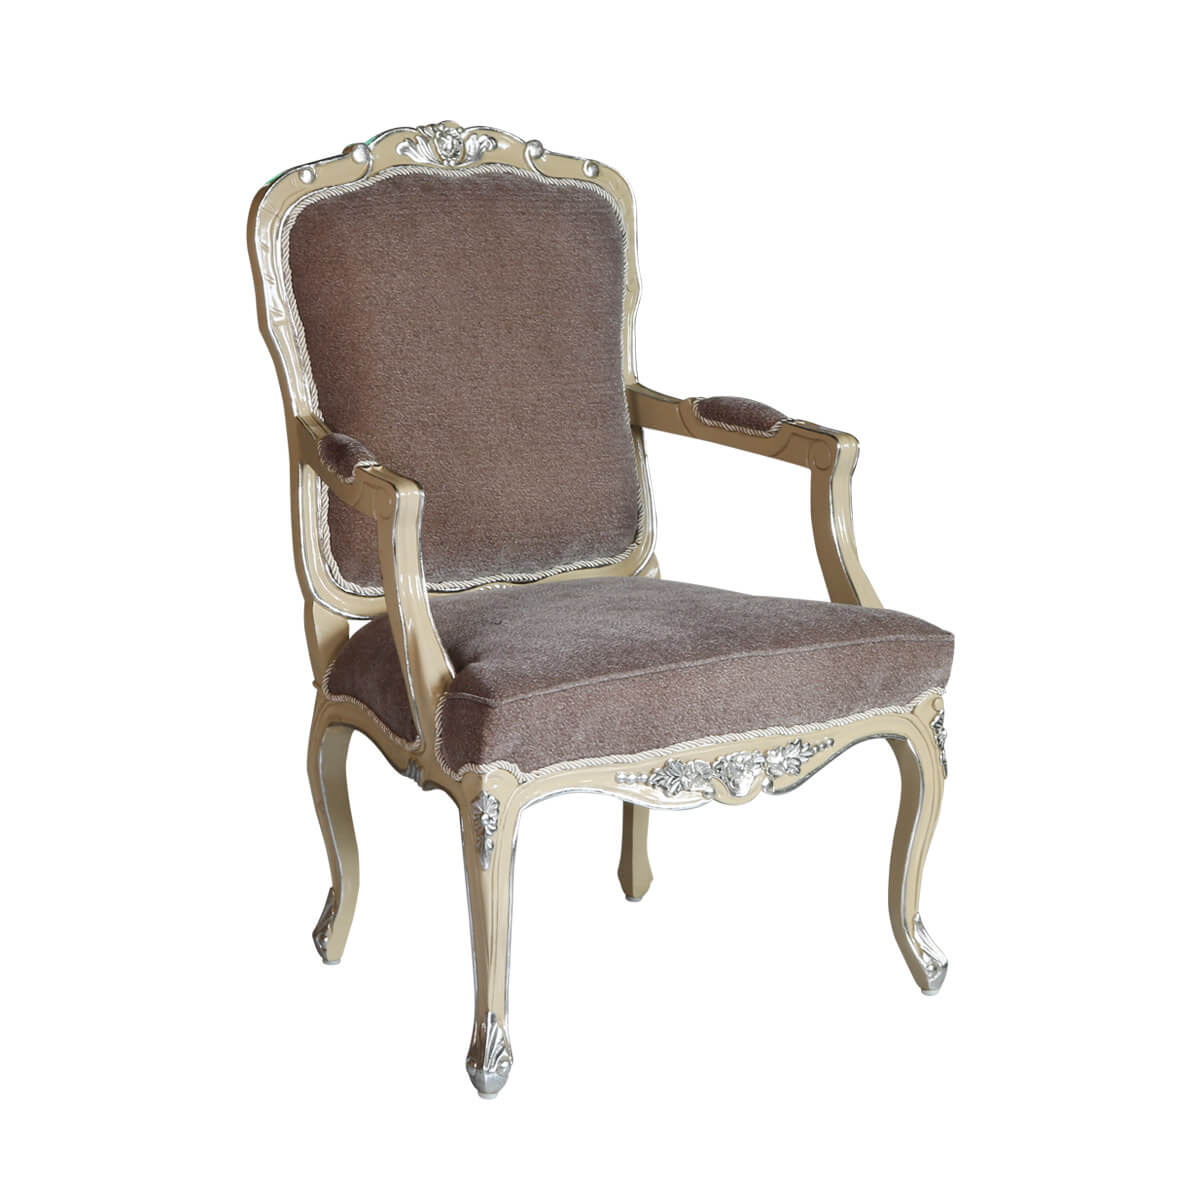 victorian accent chair table and cover hire london selwyn velvet upholstery mahogany wood